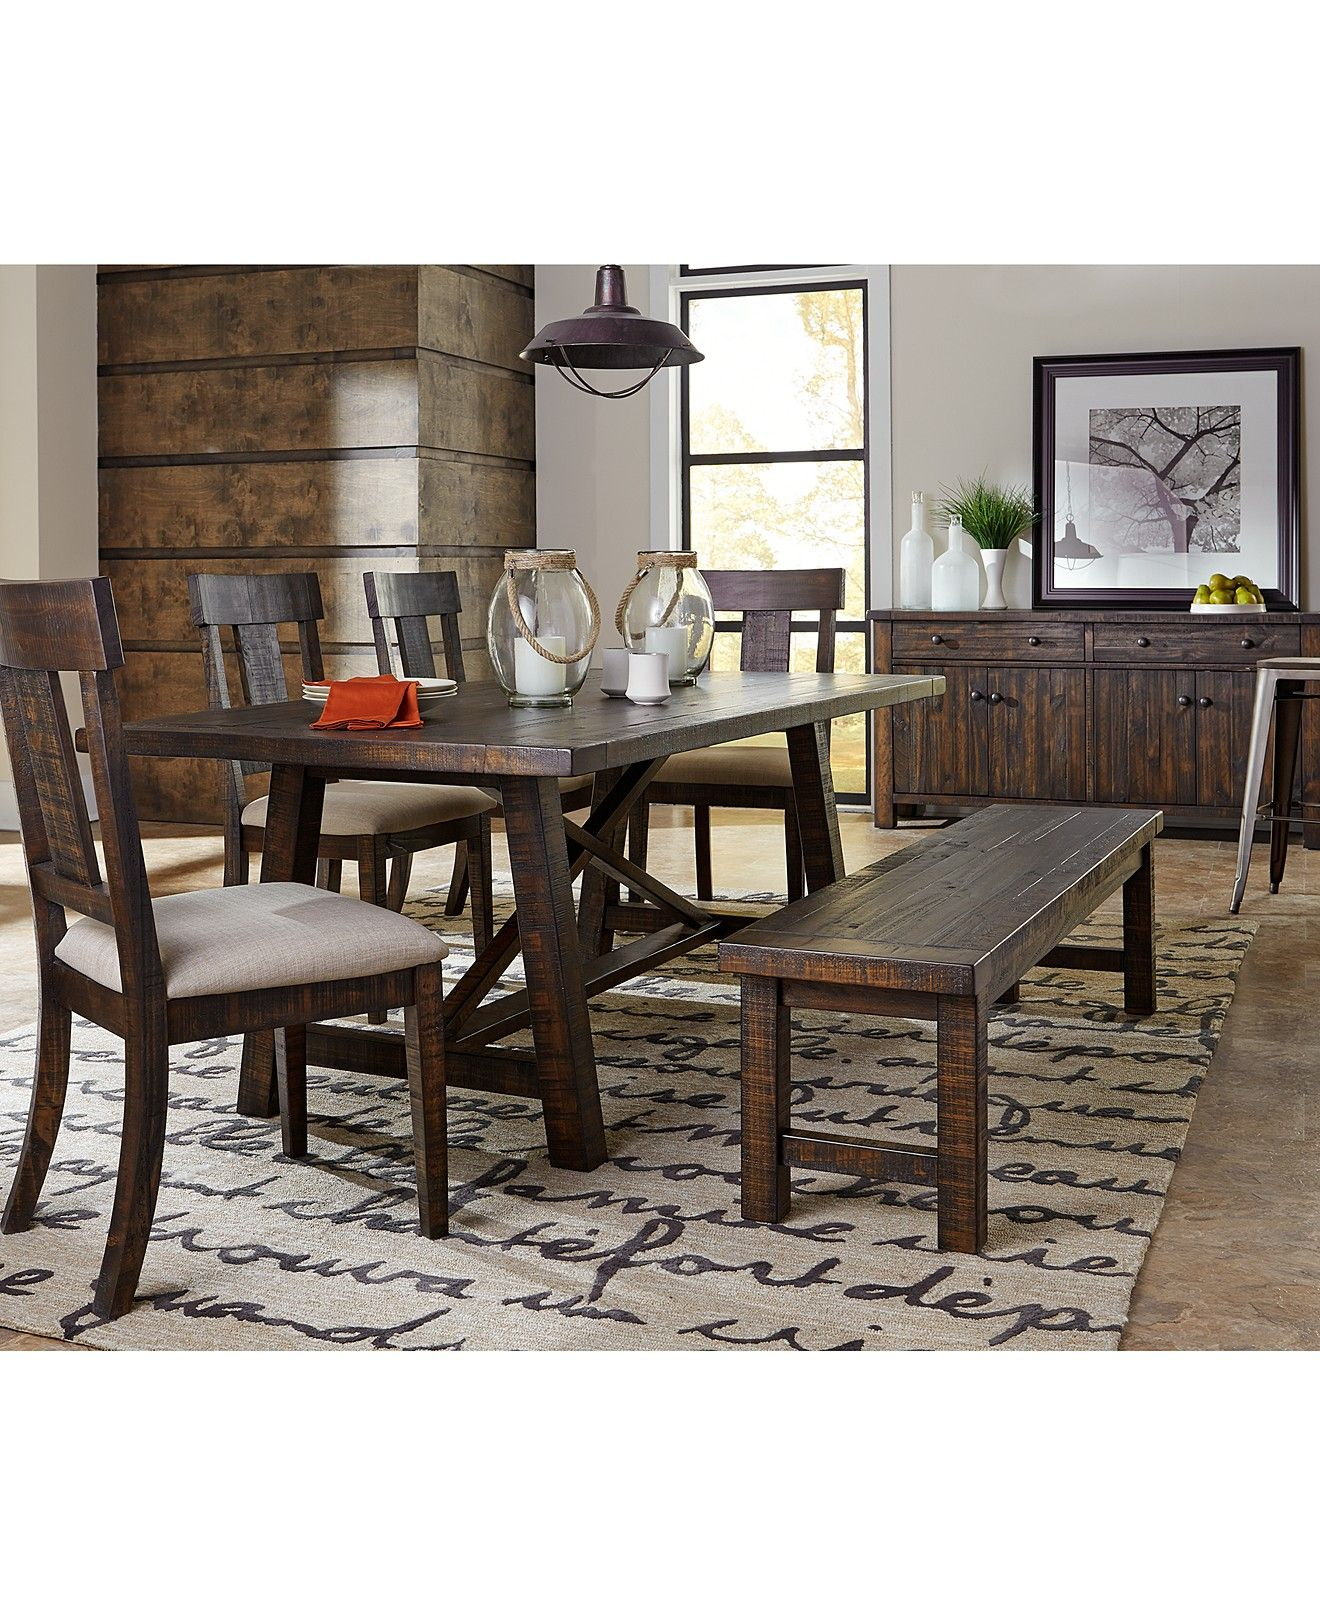 Ember 6 Piece Dining Room Furniture Set Created for Macy s